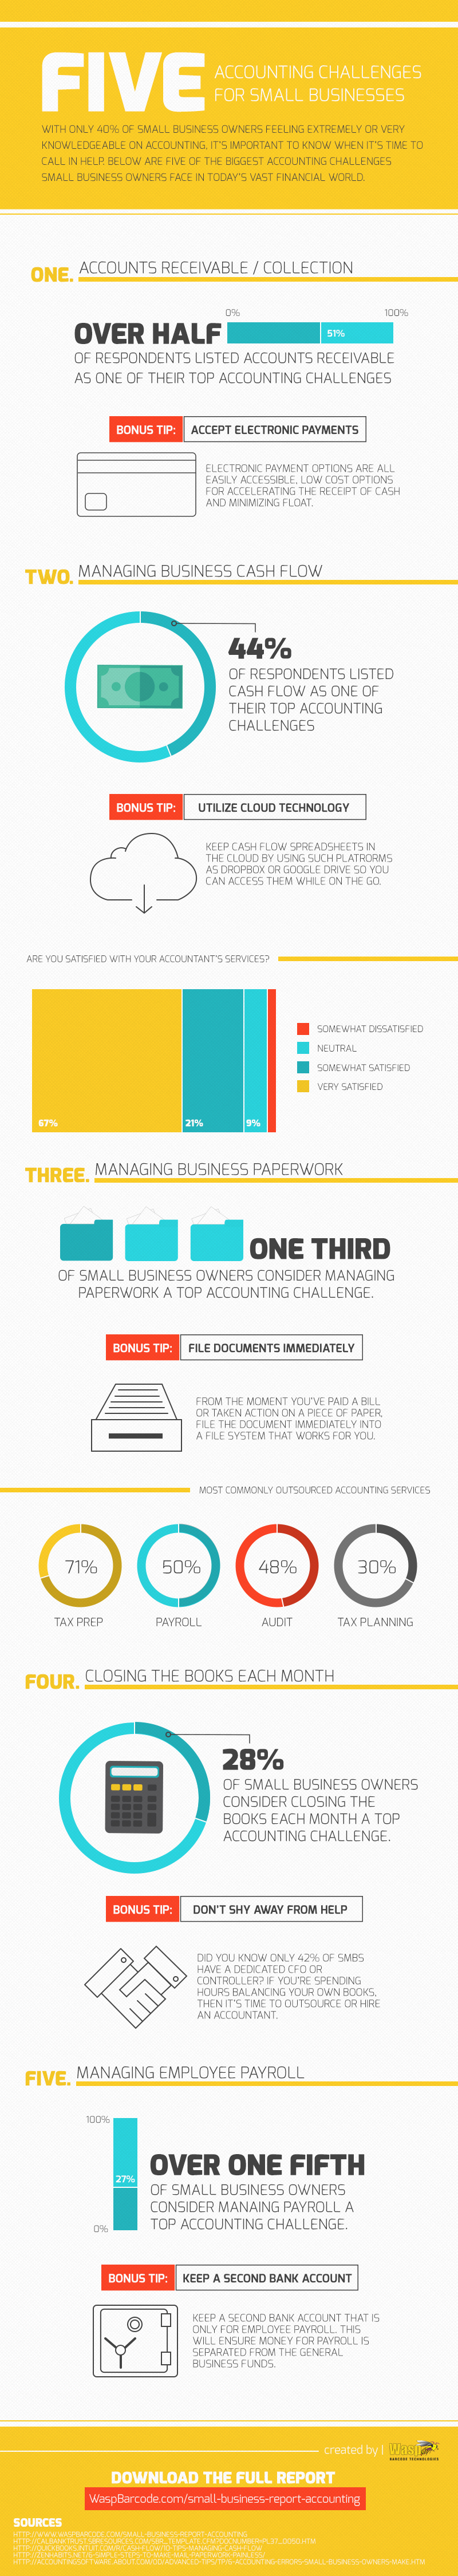 5 Accounting Challenges for Small Businesses